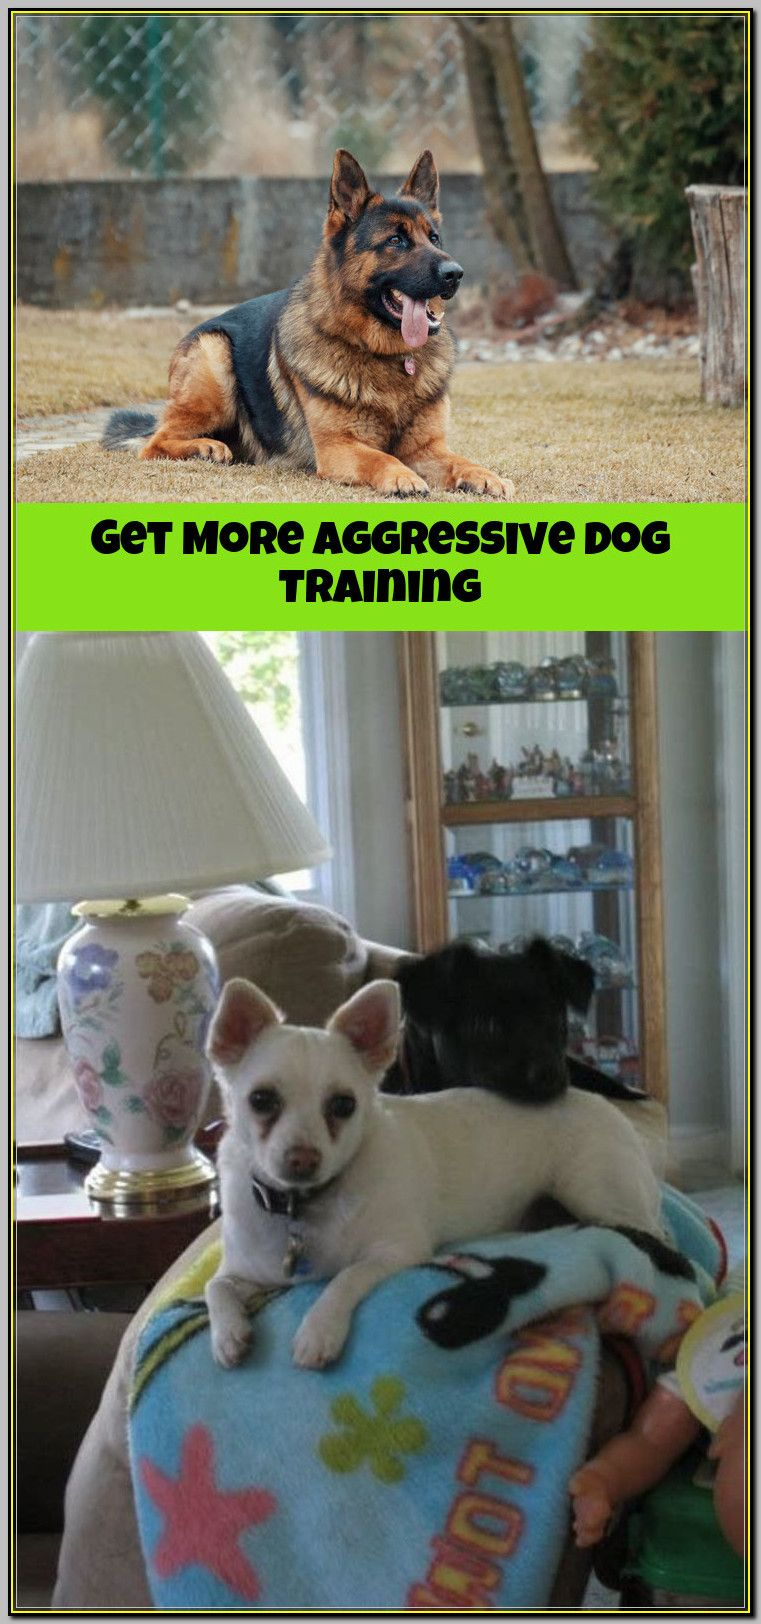 Make Aggressive Training Sessions Fun For Your Dog And You